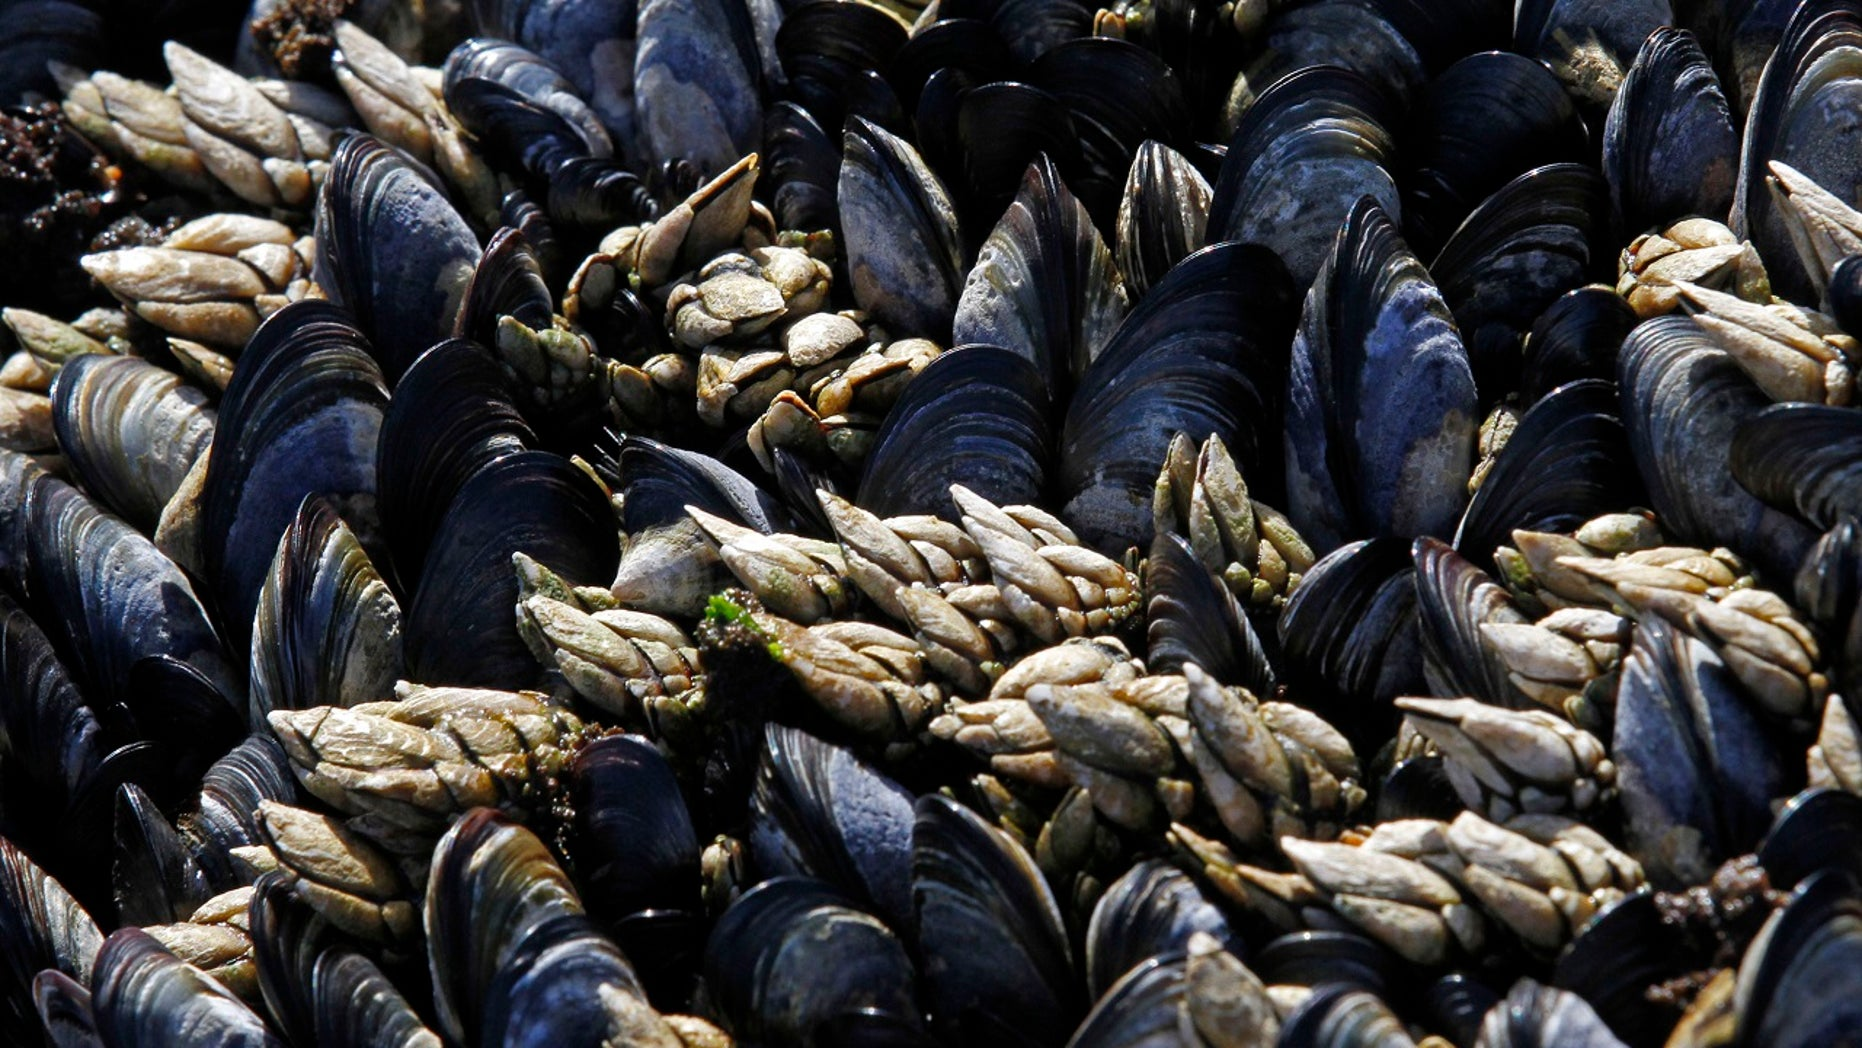 Researchers in Washington discovered trace amounts of opioids in mussels off Seattle's coast.